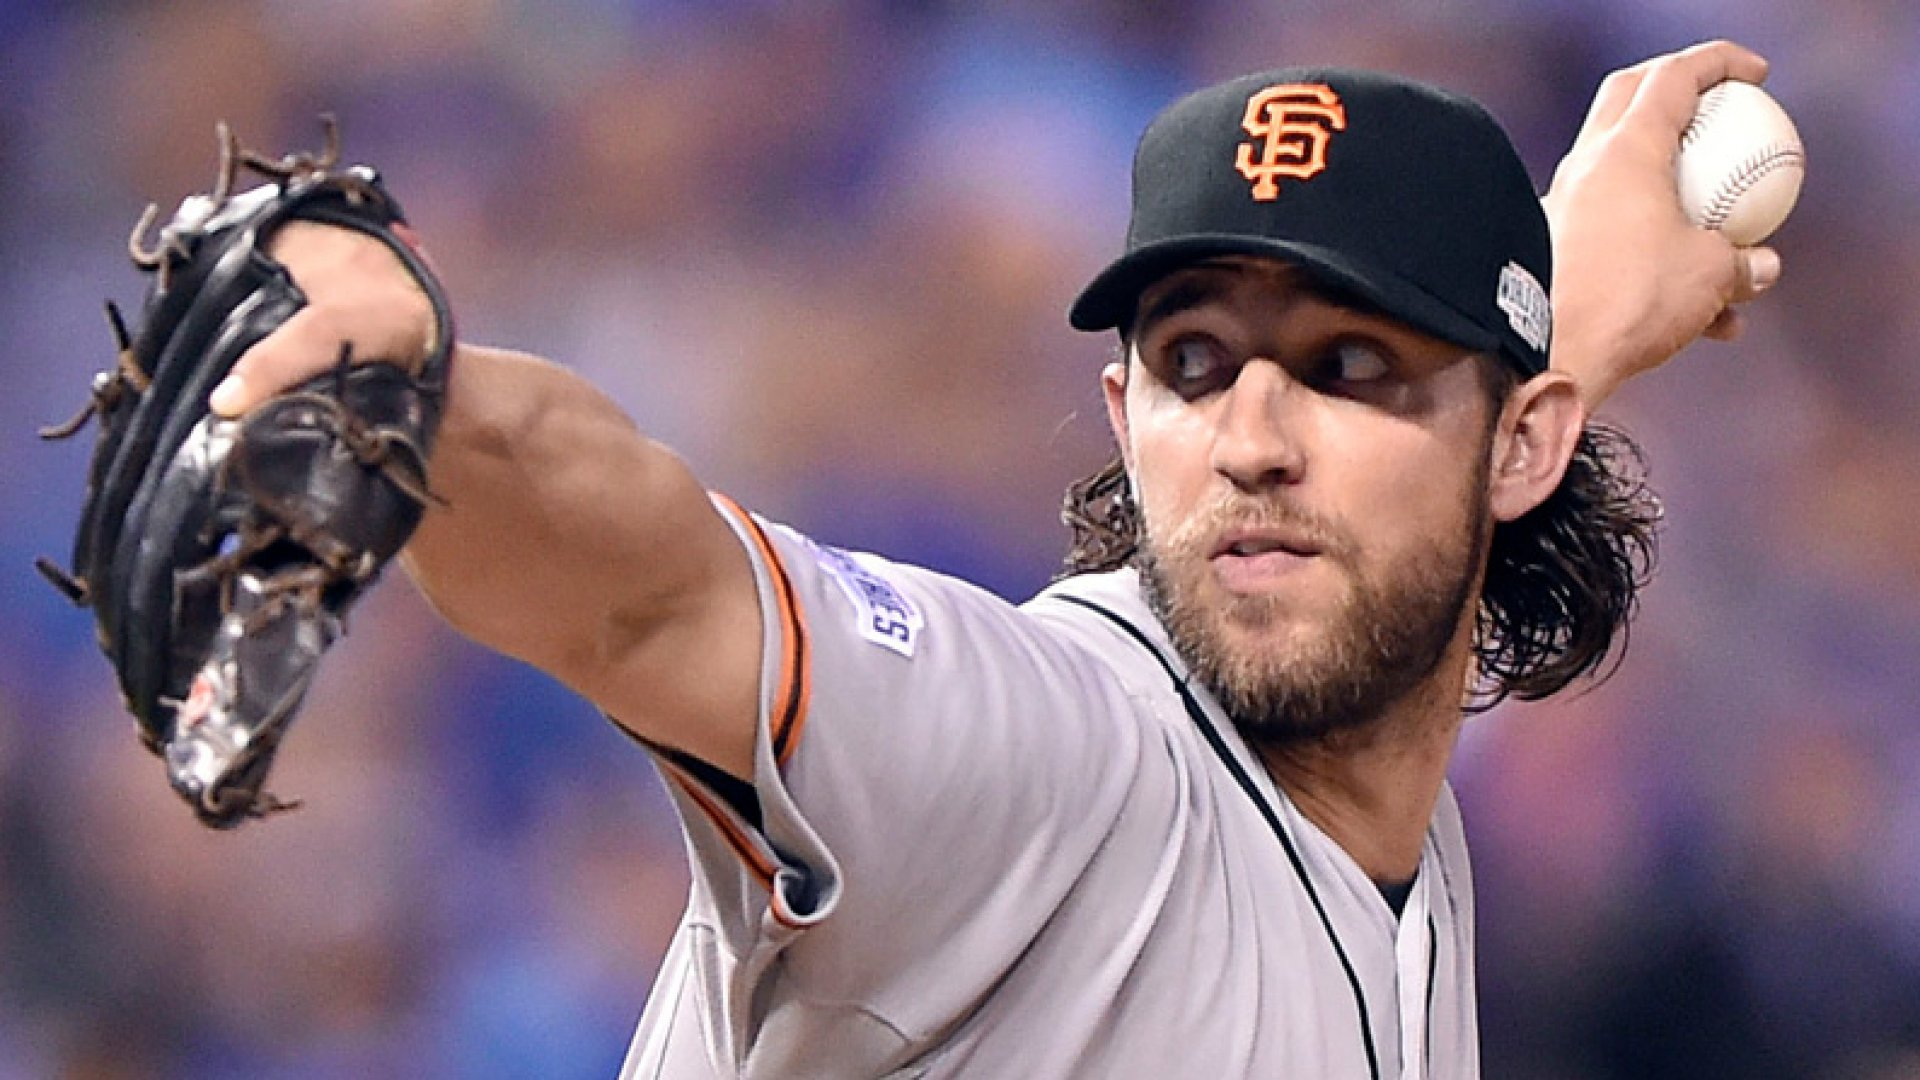 What You Can Learn About Rallying a Team From Madison Bumgarner